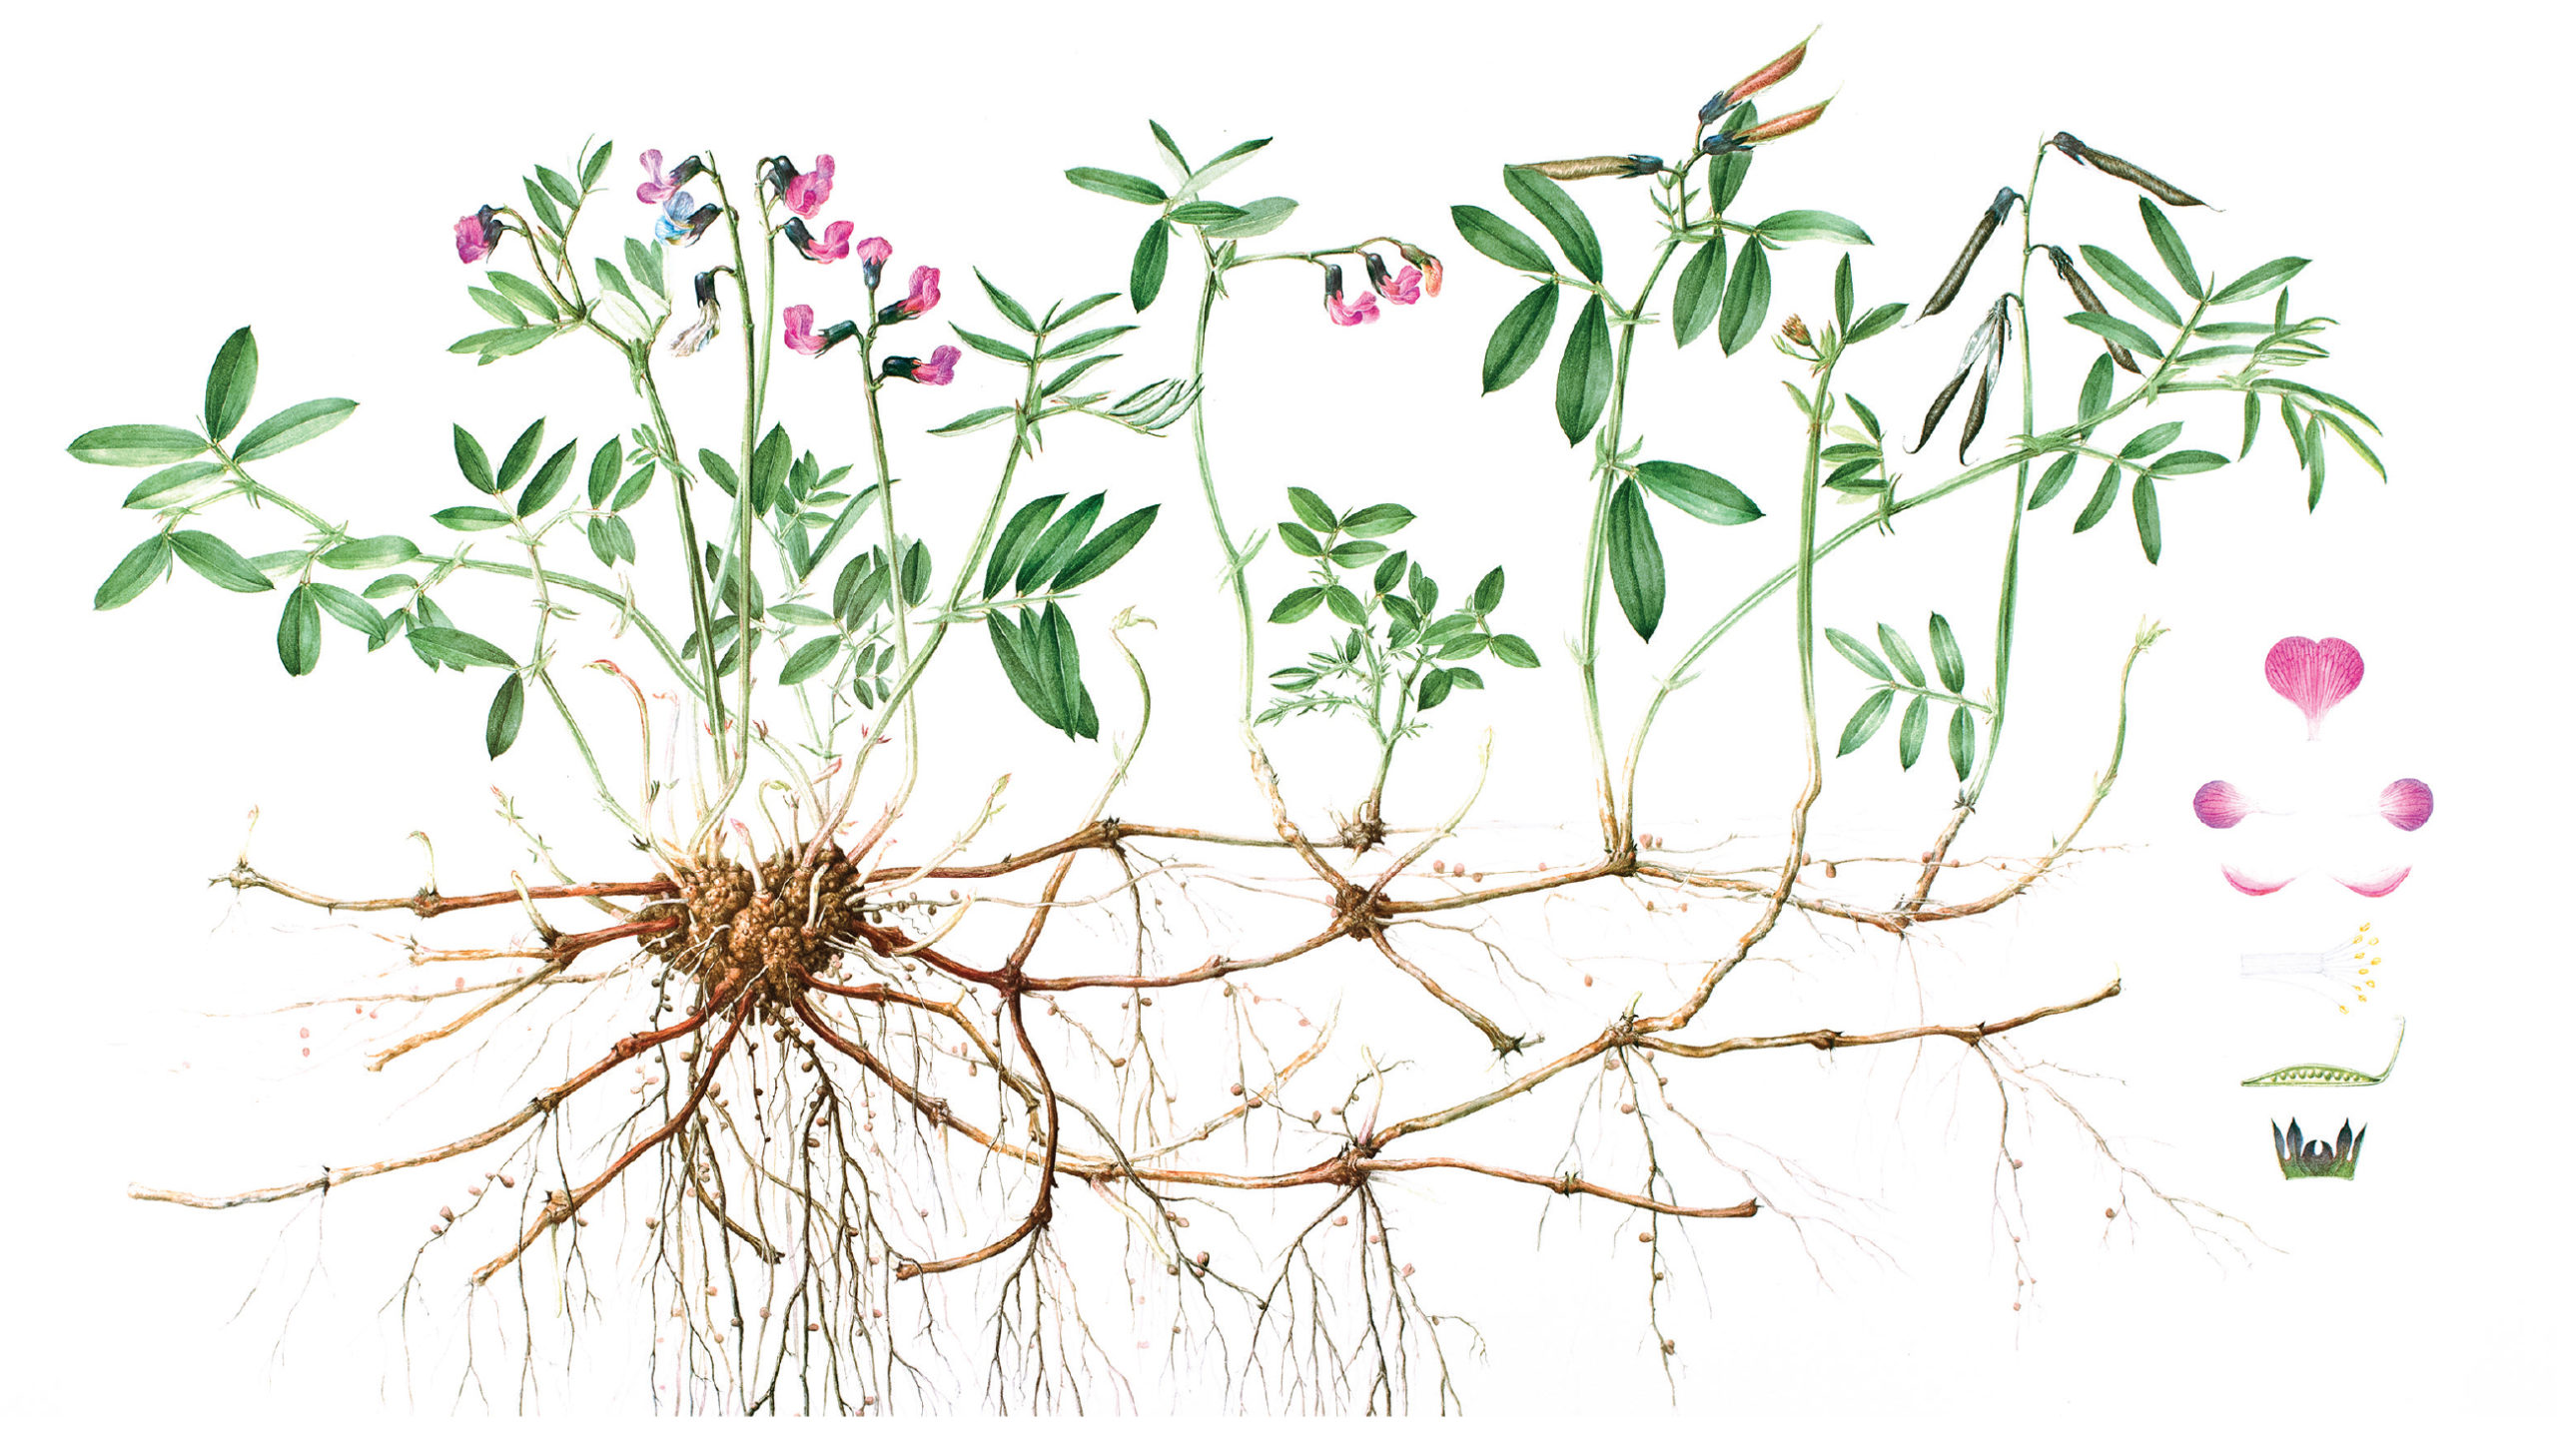 Bitter vetch illustrated by Sarah Roberts